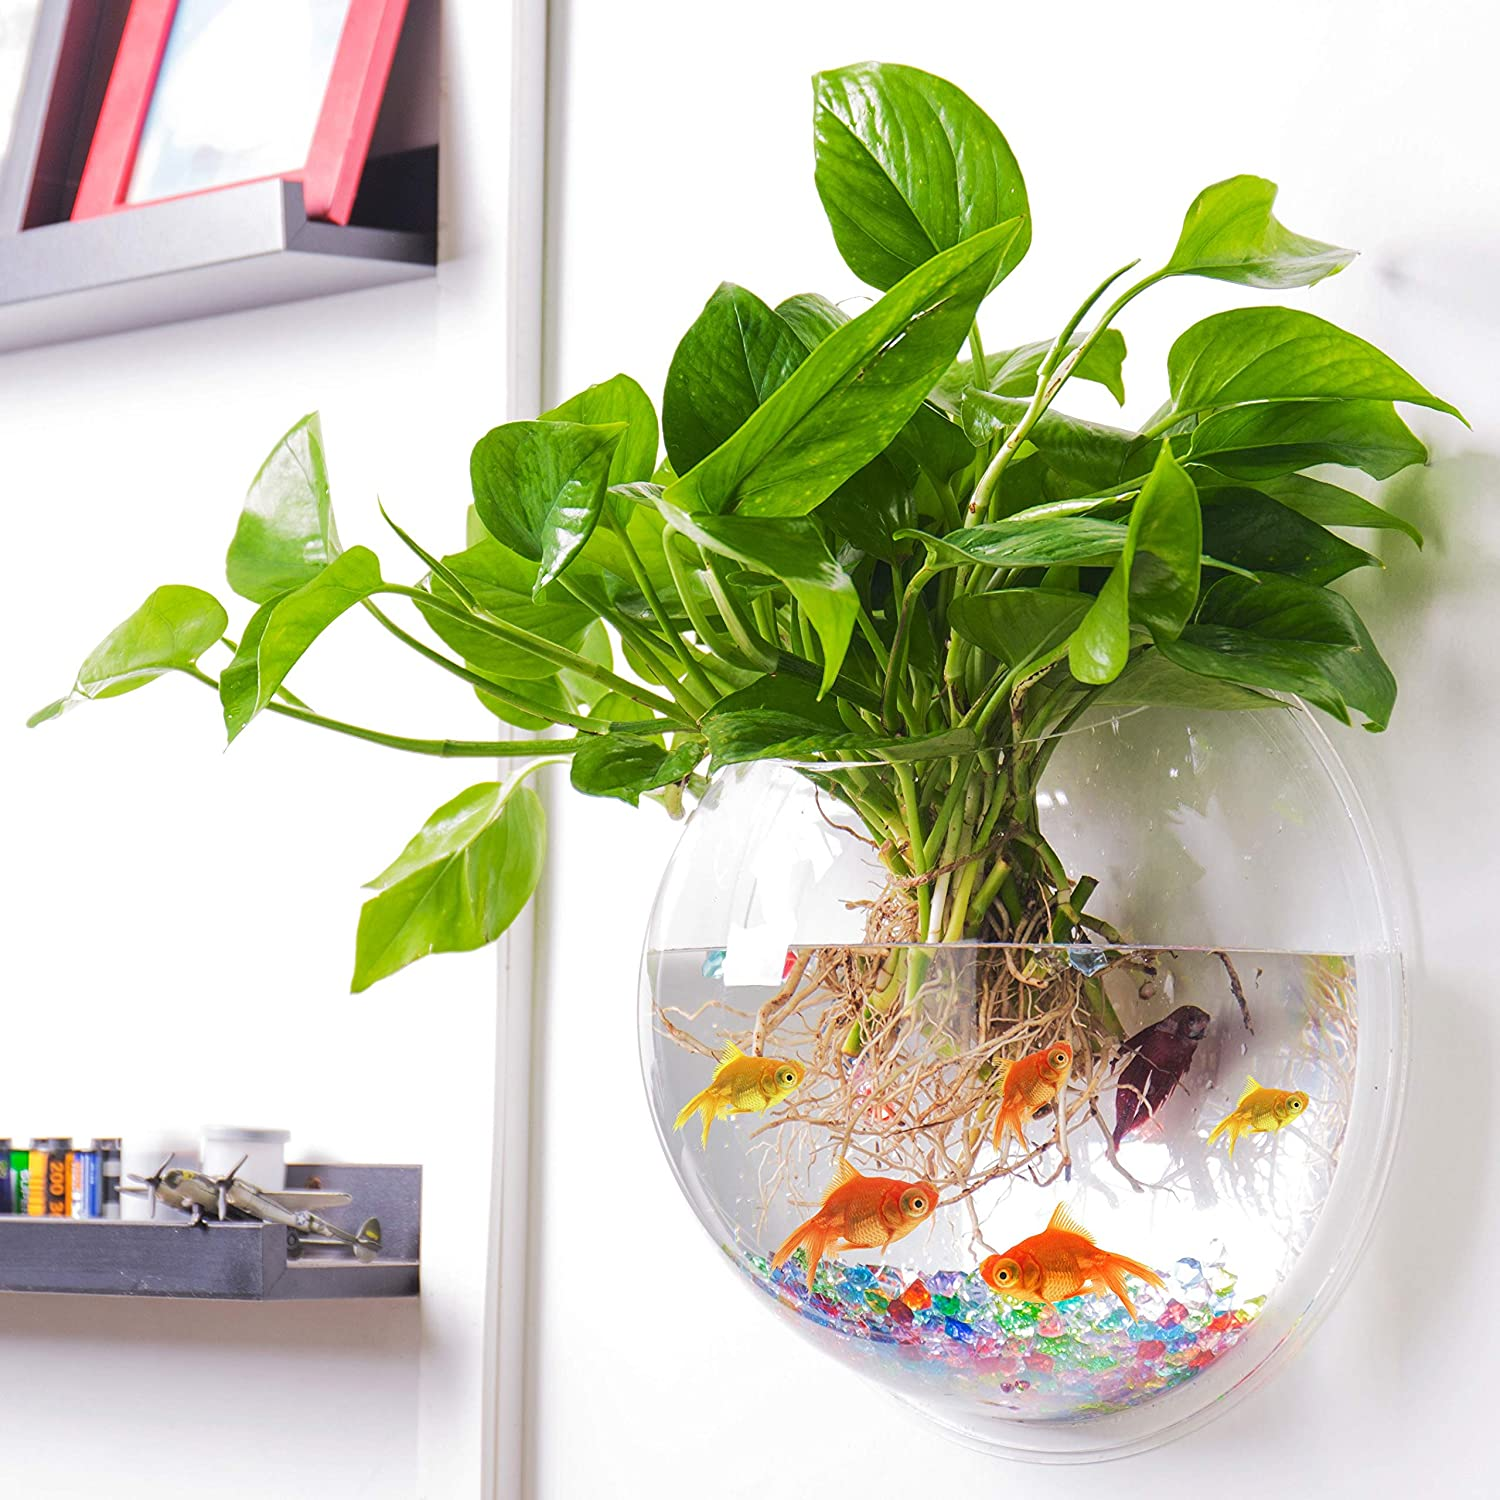 Outgeek Wall Fish Bubble Wall Hanging Bowl Clear Acrylic Vase Flower Plant Pot Aquarium